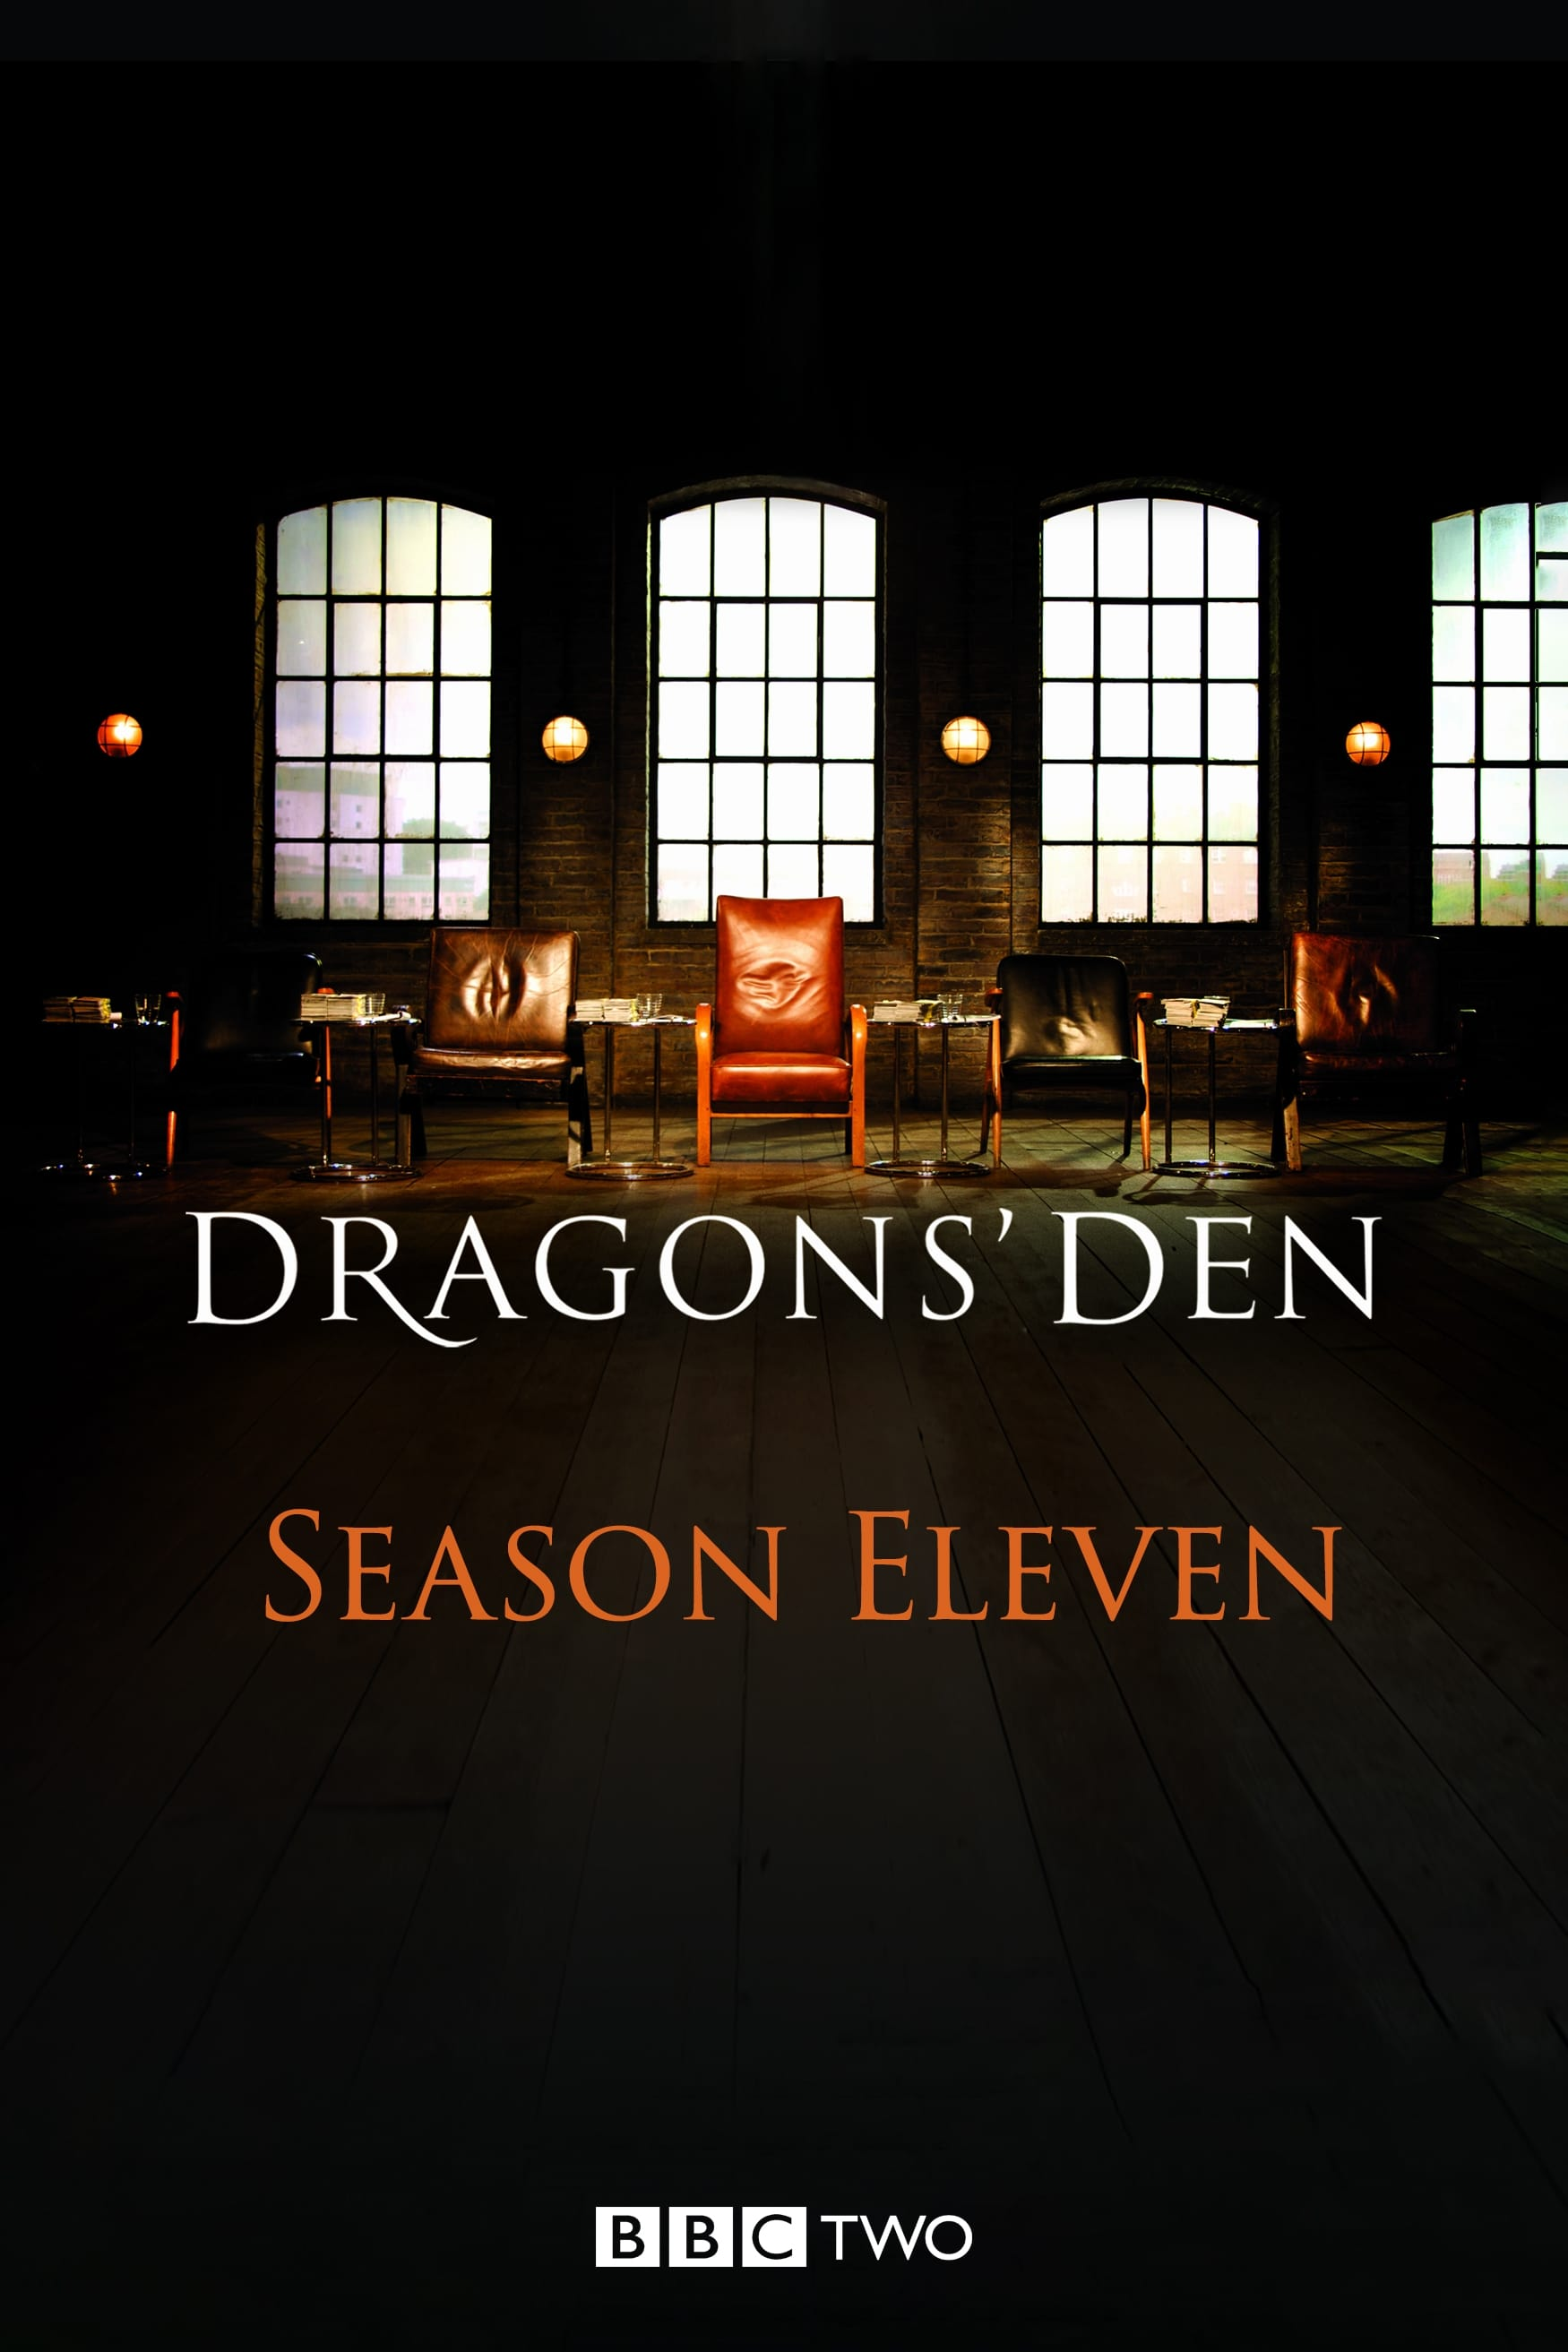 Dragons' Den Season 11